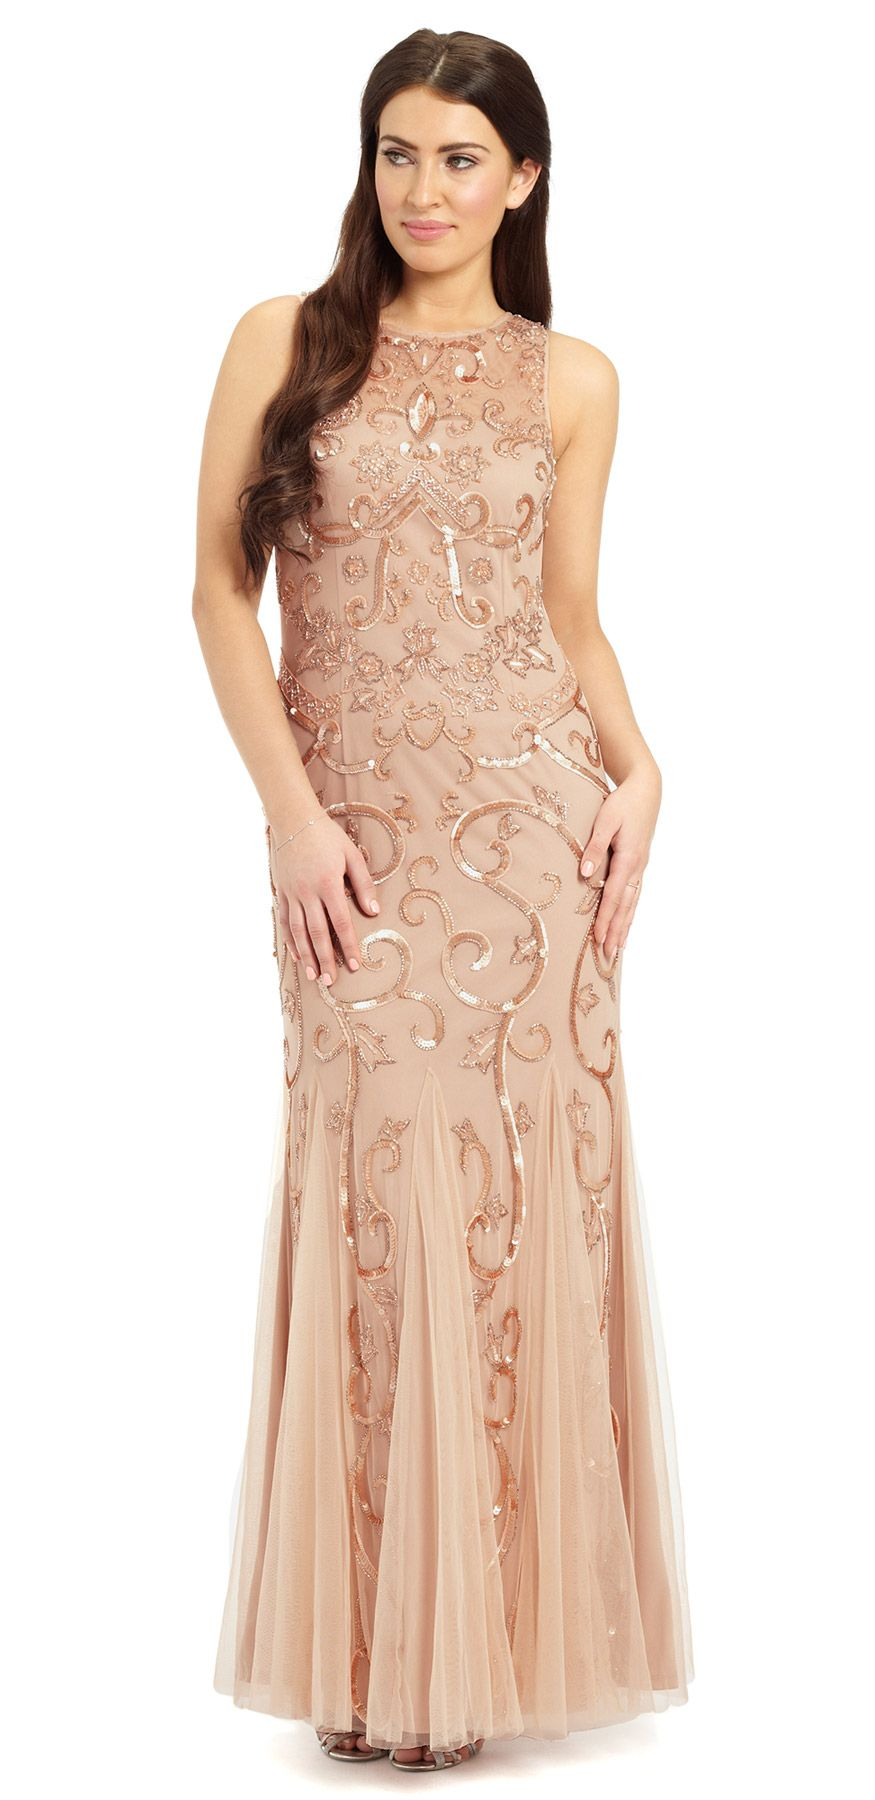 Karla Sequin & Beaded Evening Gown wedding reception dresses ...